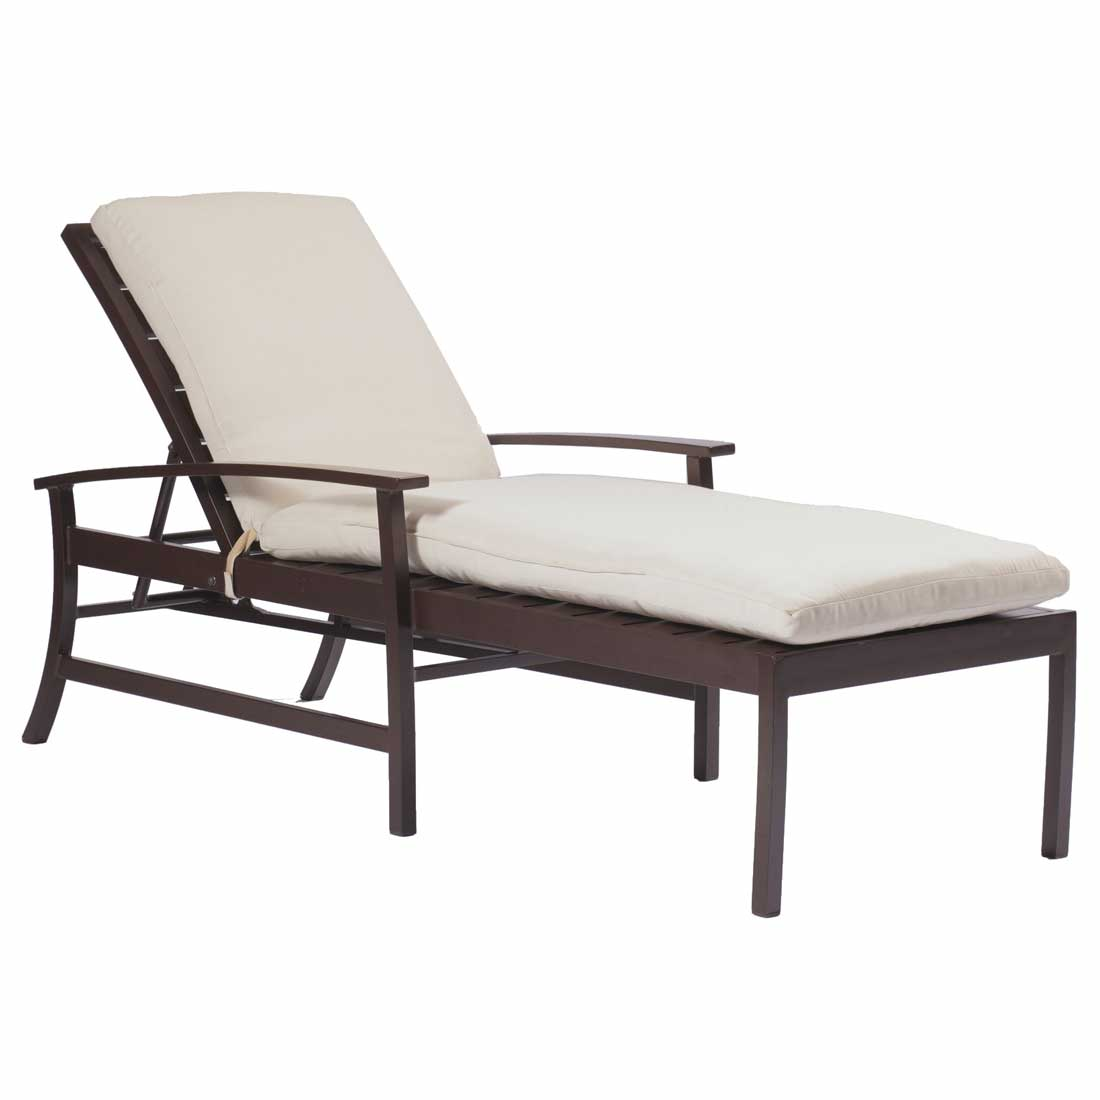 Charleston patio chaise lounge chairs for Chaise lounge bench